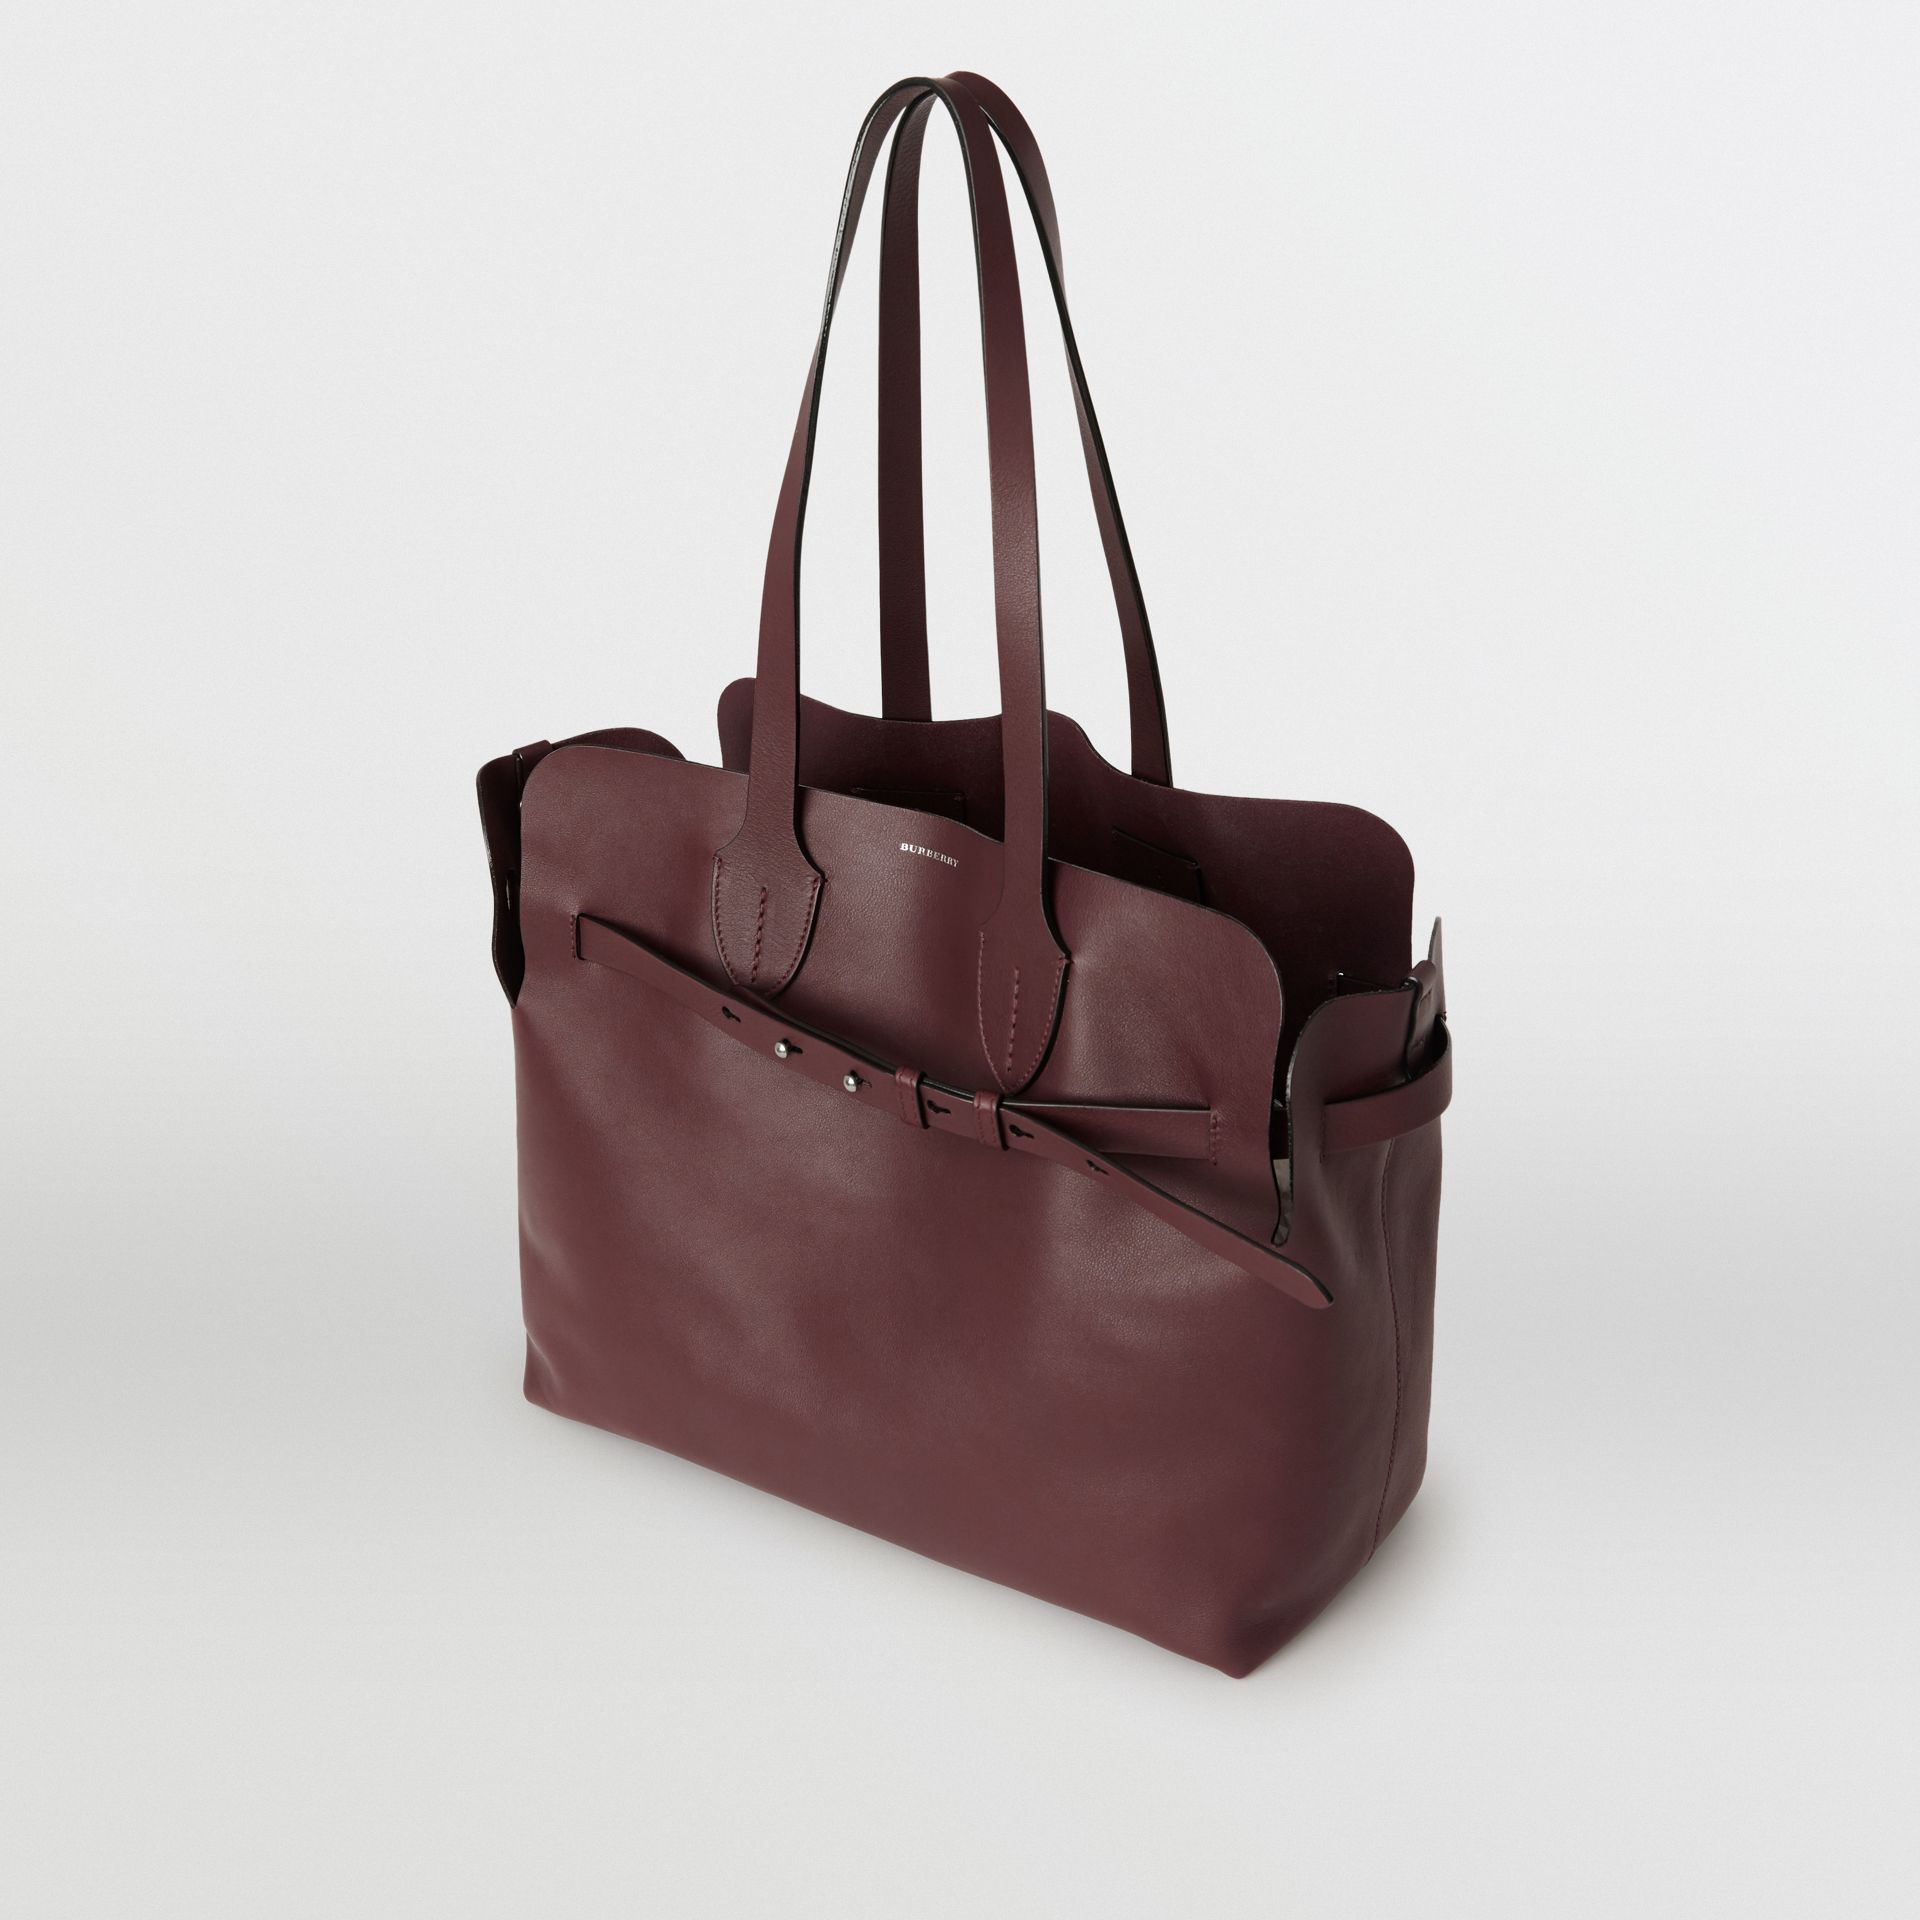 Sac The Belt moyen en cuir doux (Bordeaux Intense) - Femme | Burberry - photo de la galerie 2